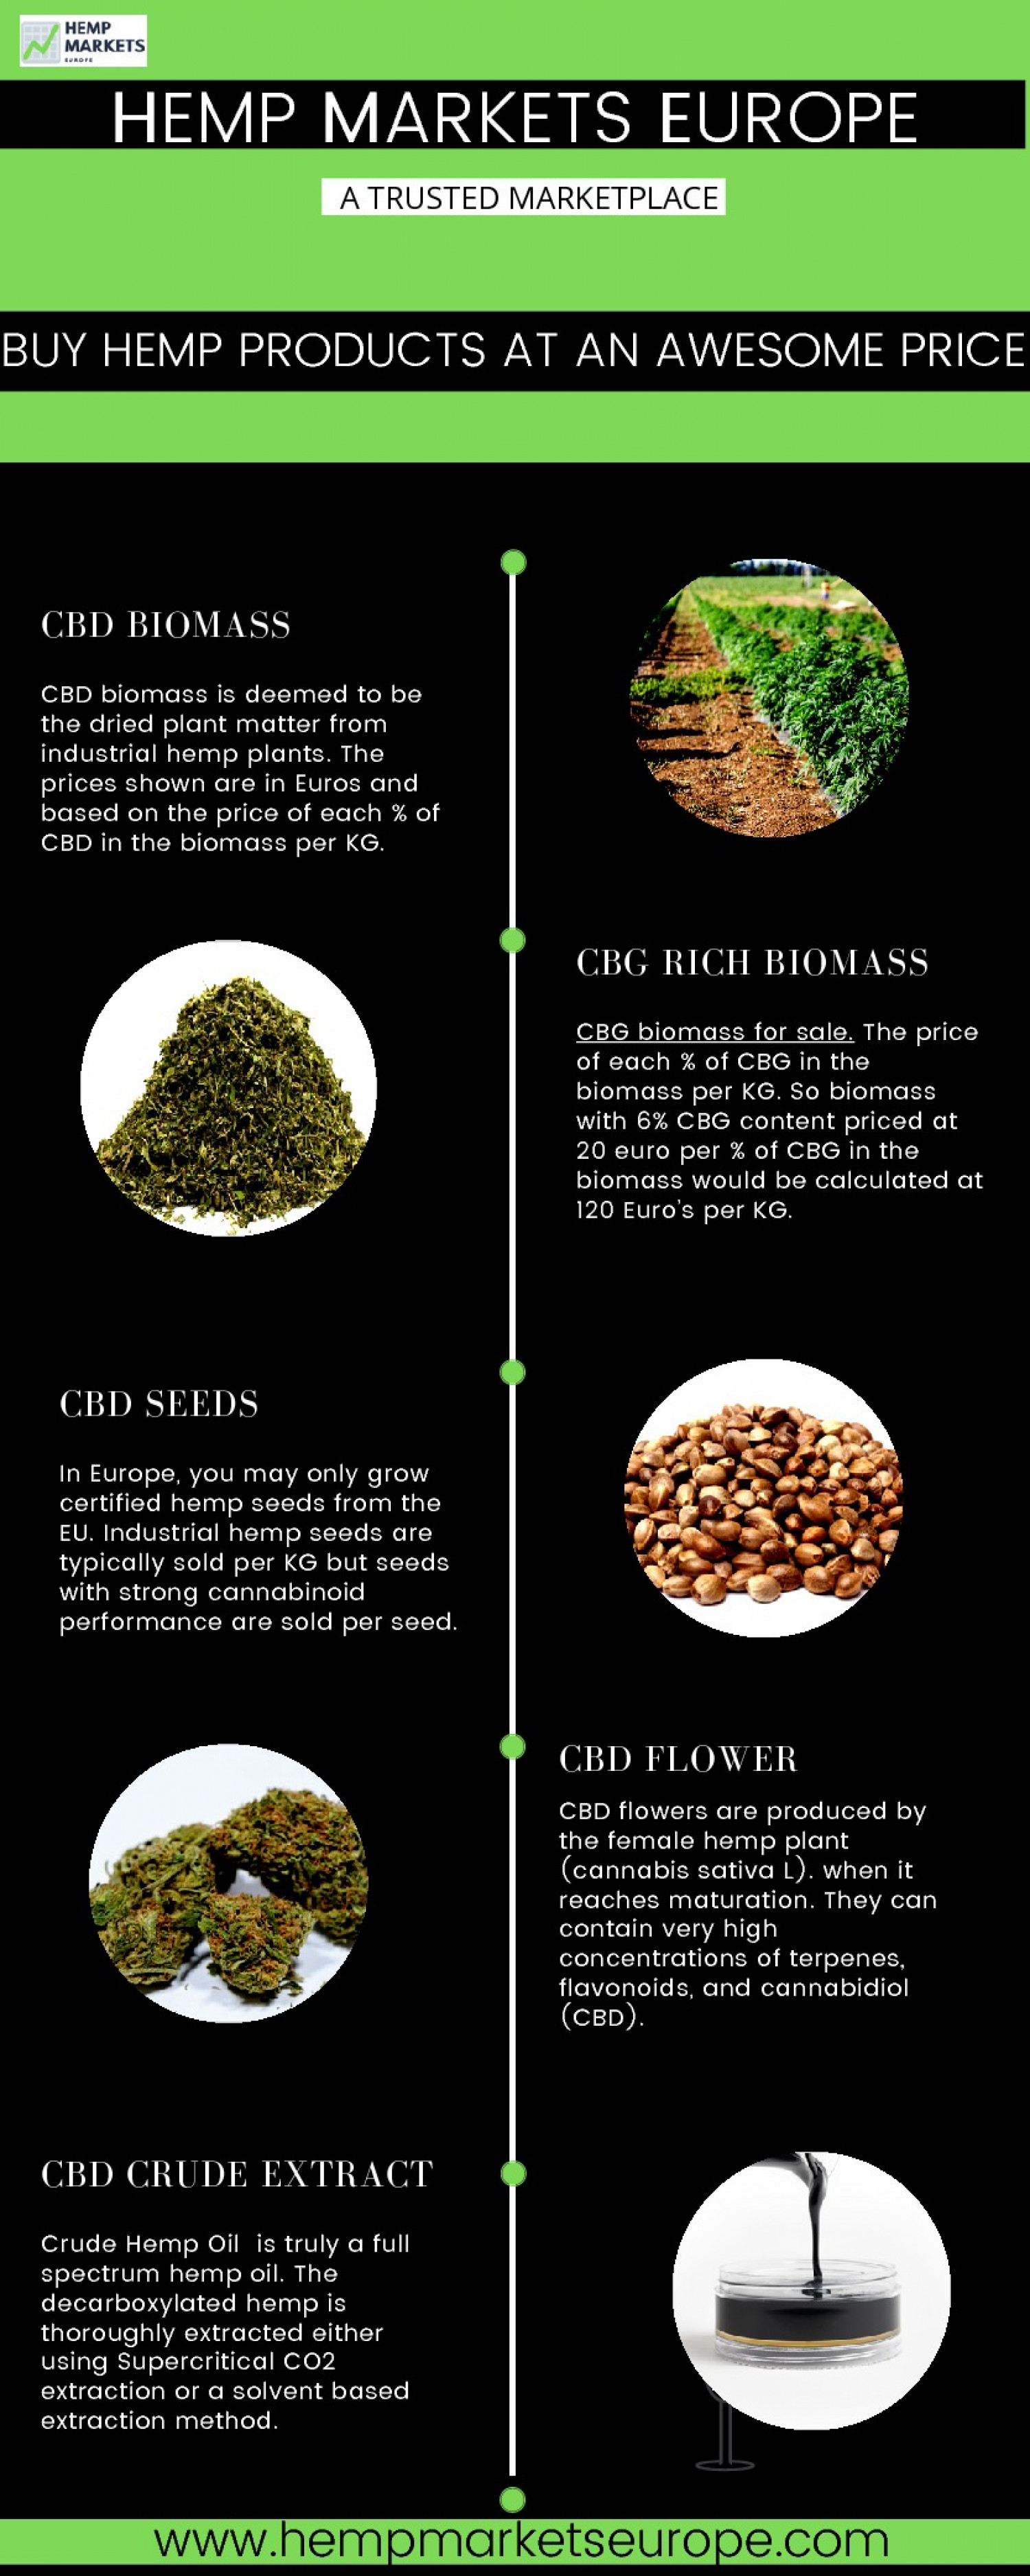 Buy Hemp Products at an Awesome Price Infographic